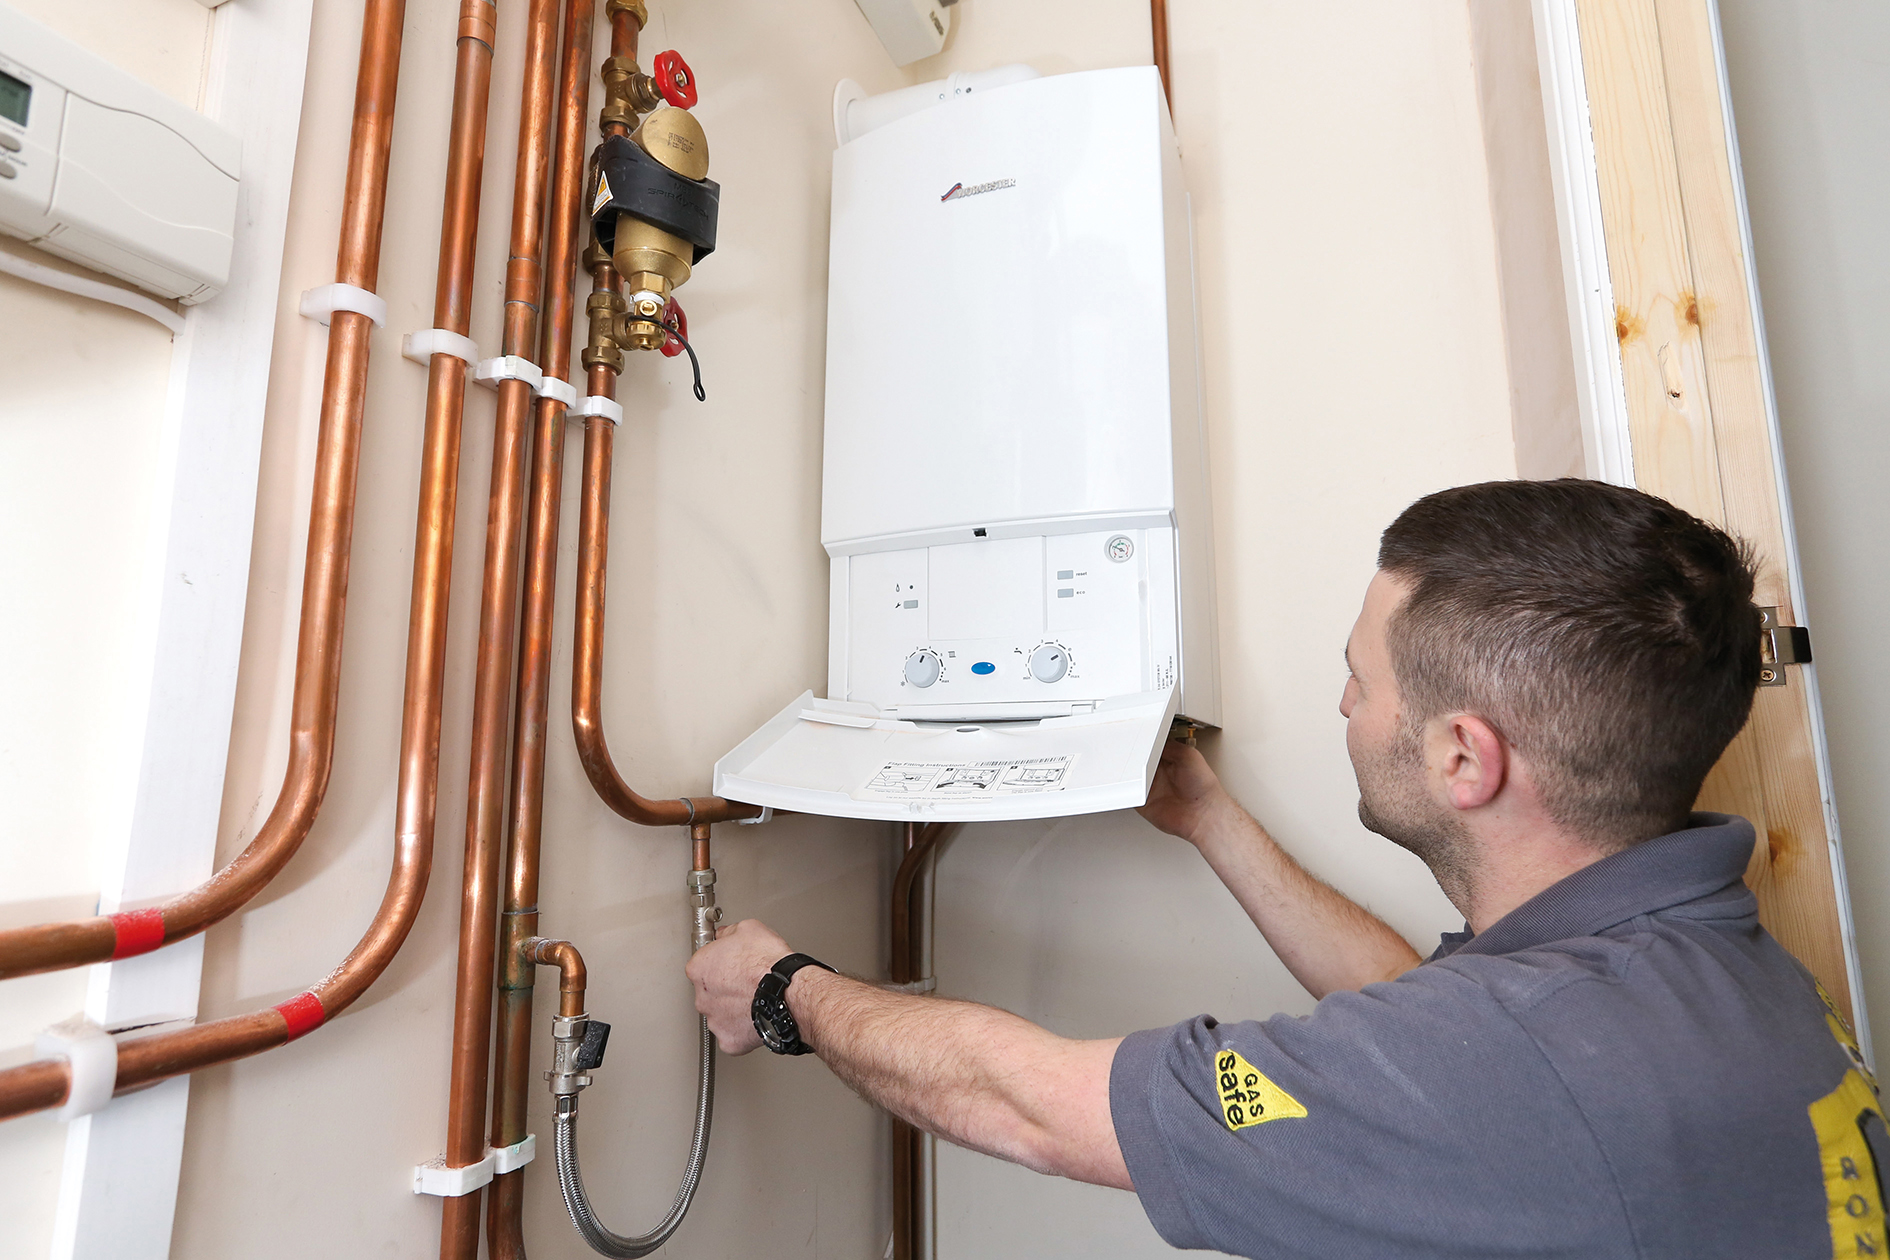 Worcester-Gas-Safe-Installer.jpg?fit=1890%2C1260&s